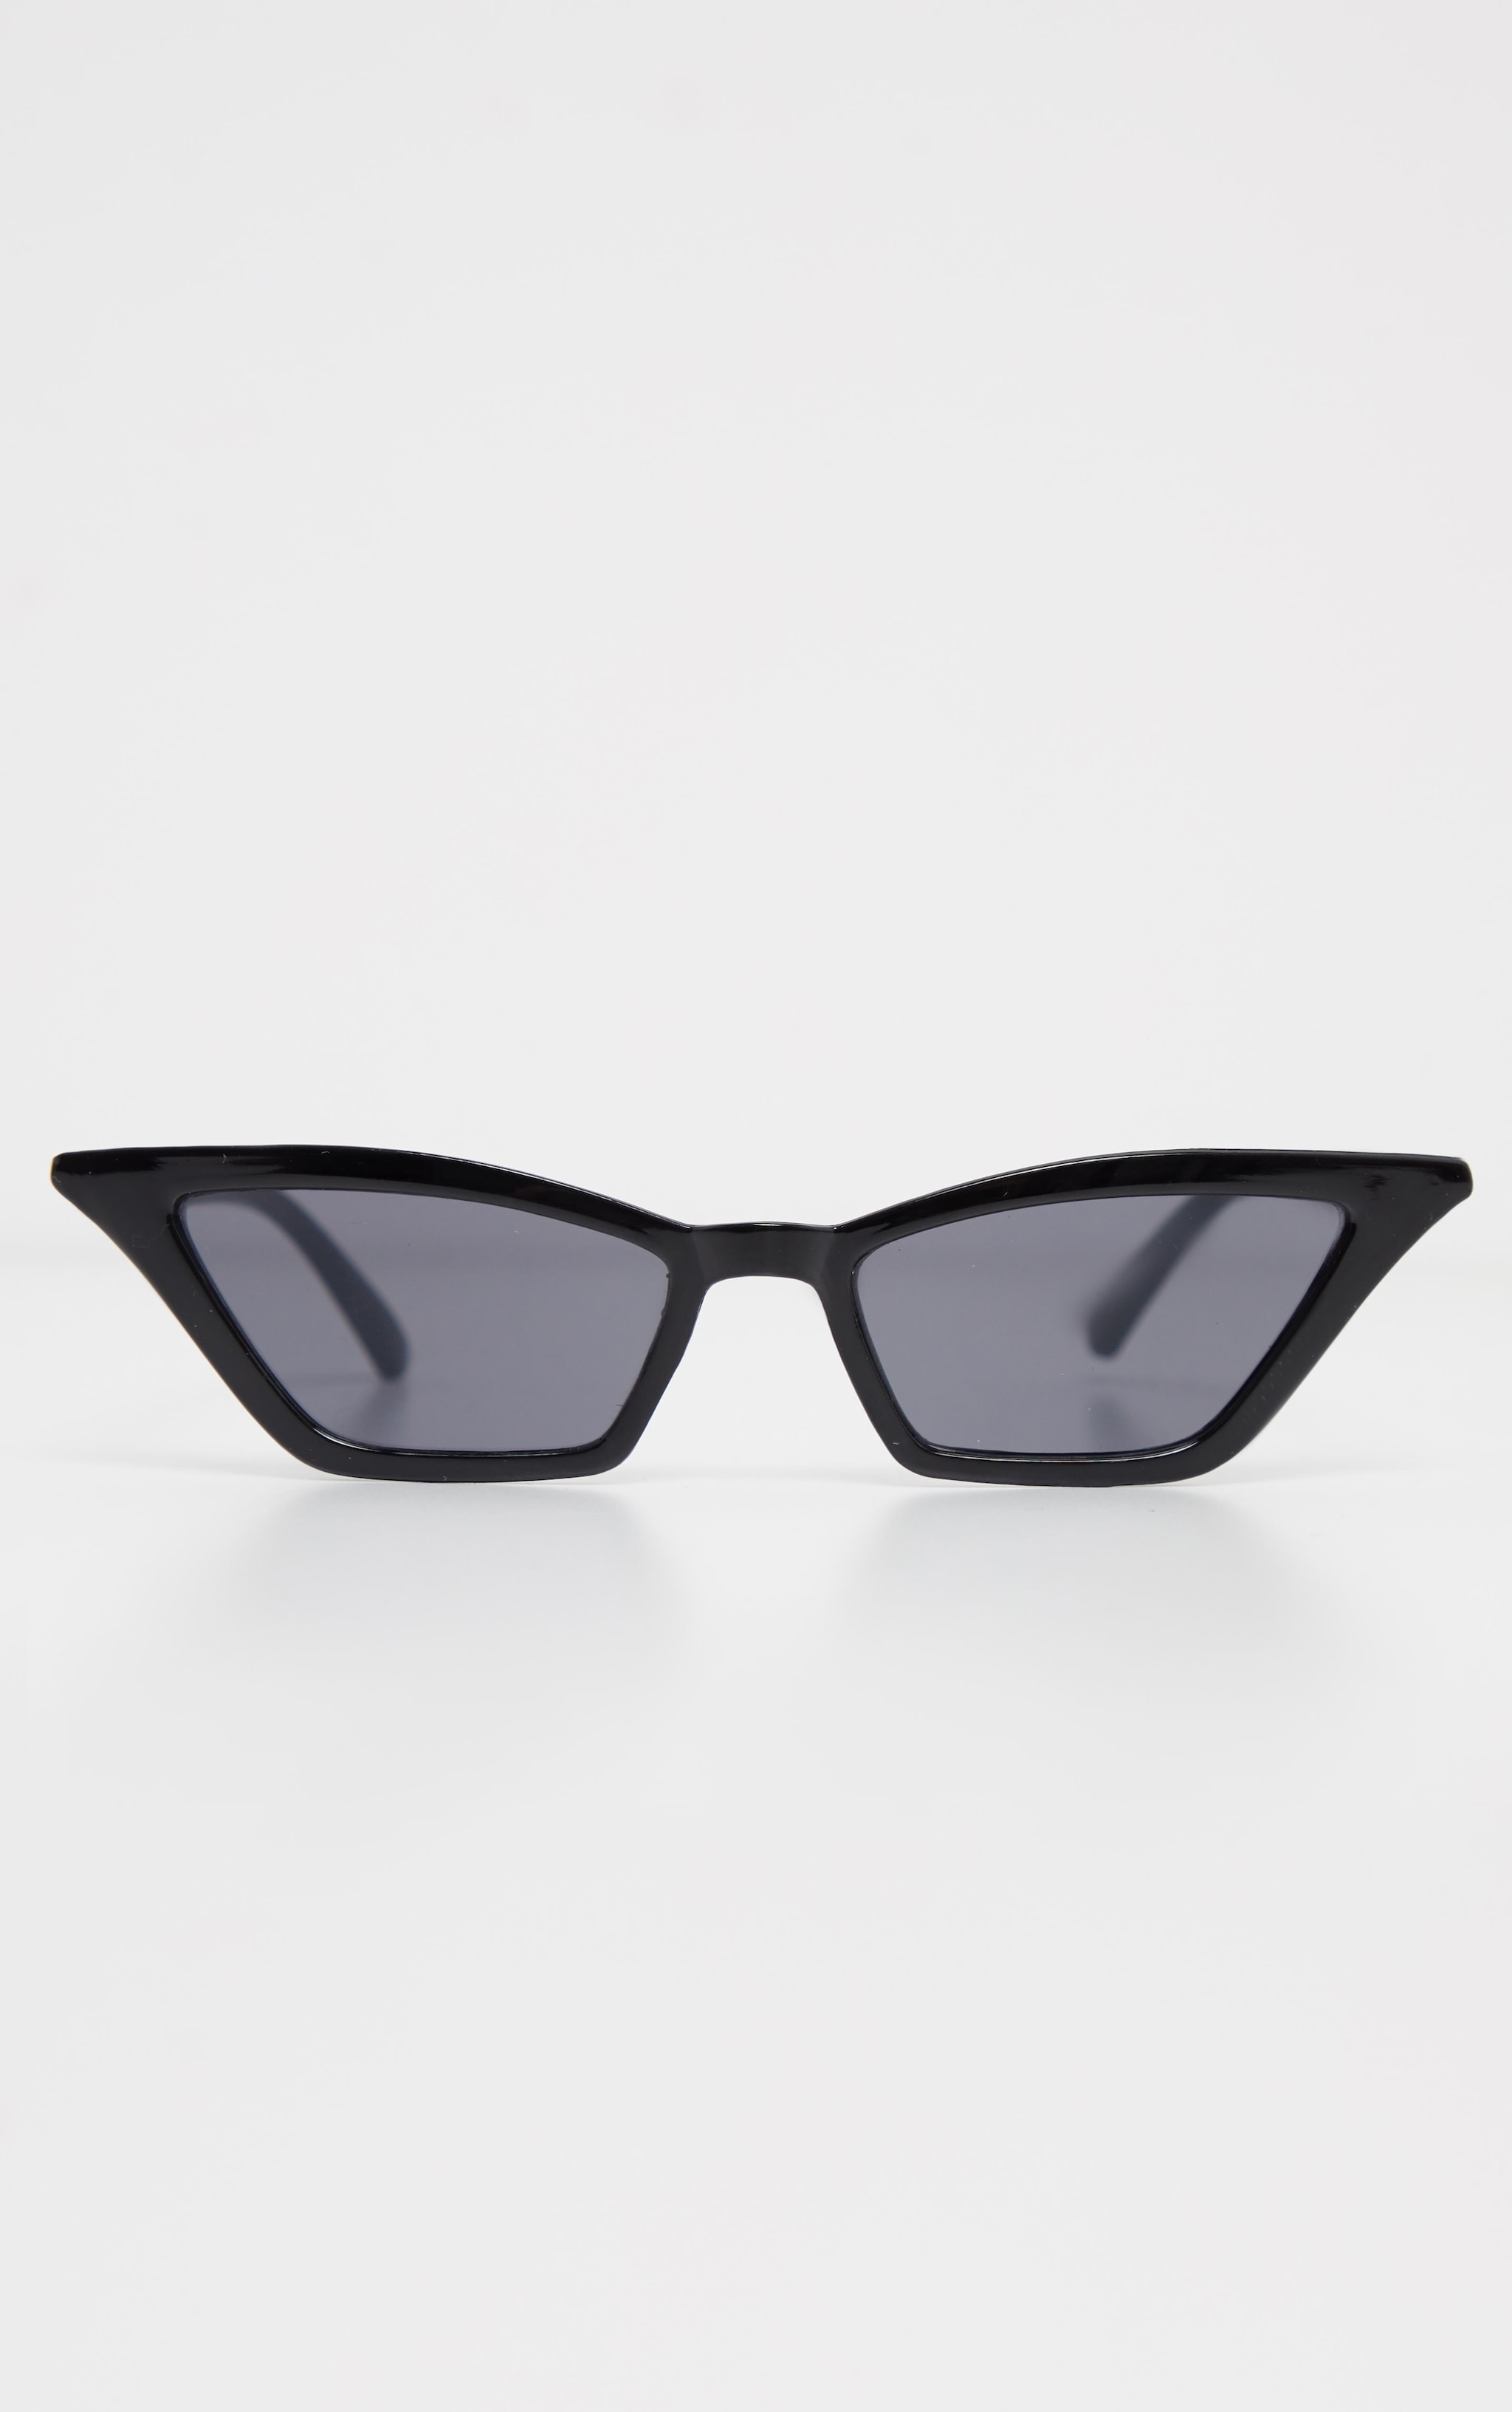 Black Narrow Slim Angular Cat Eye Sunglasses 2